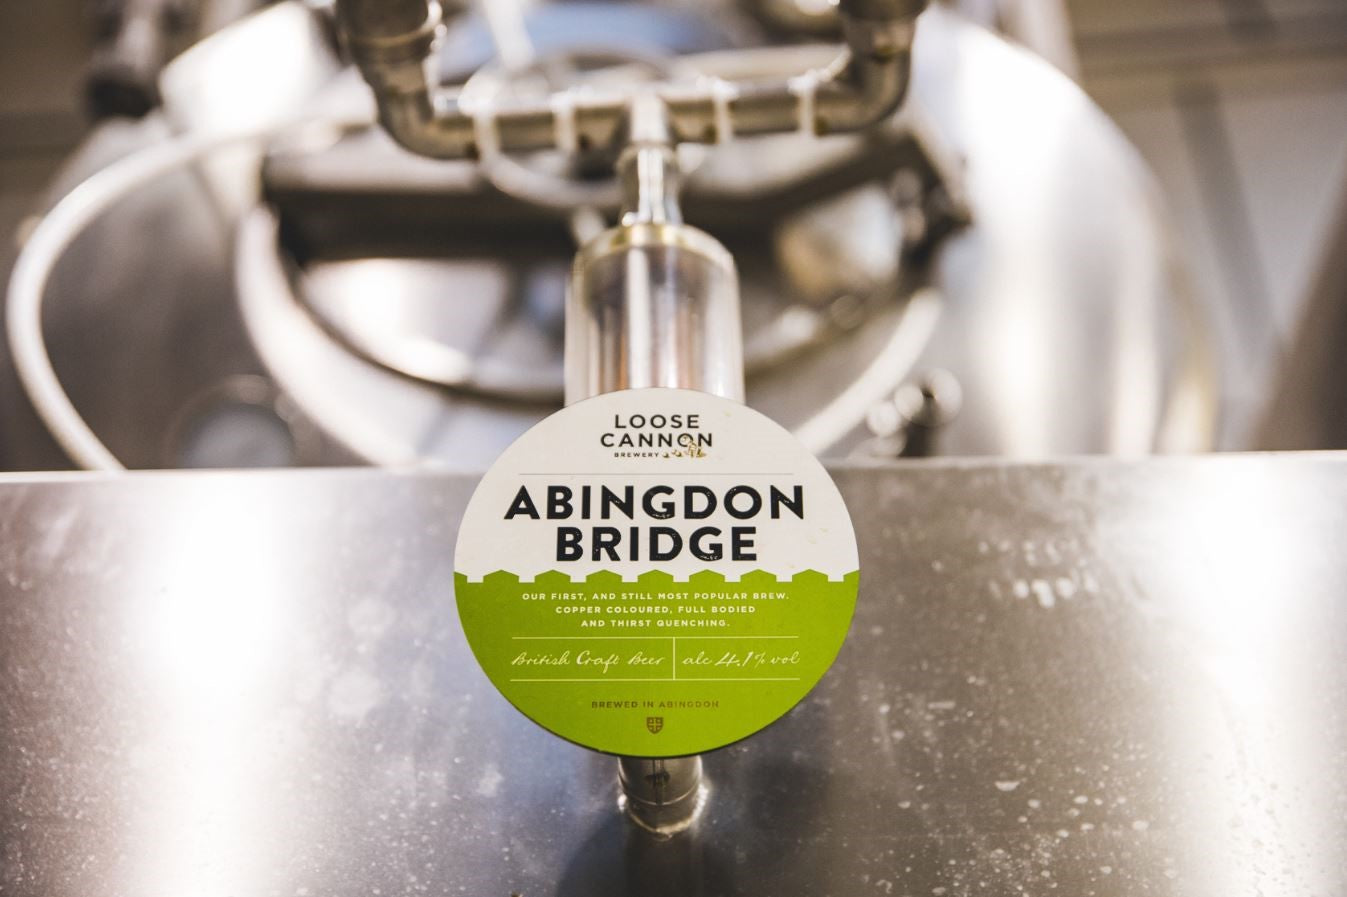 Abingdon Bridge beer from Loose Cannon's Abingdon brewery.